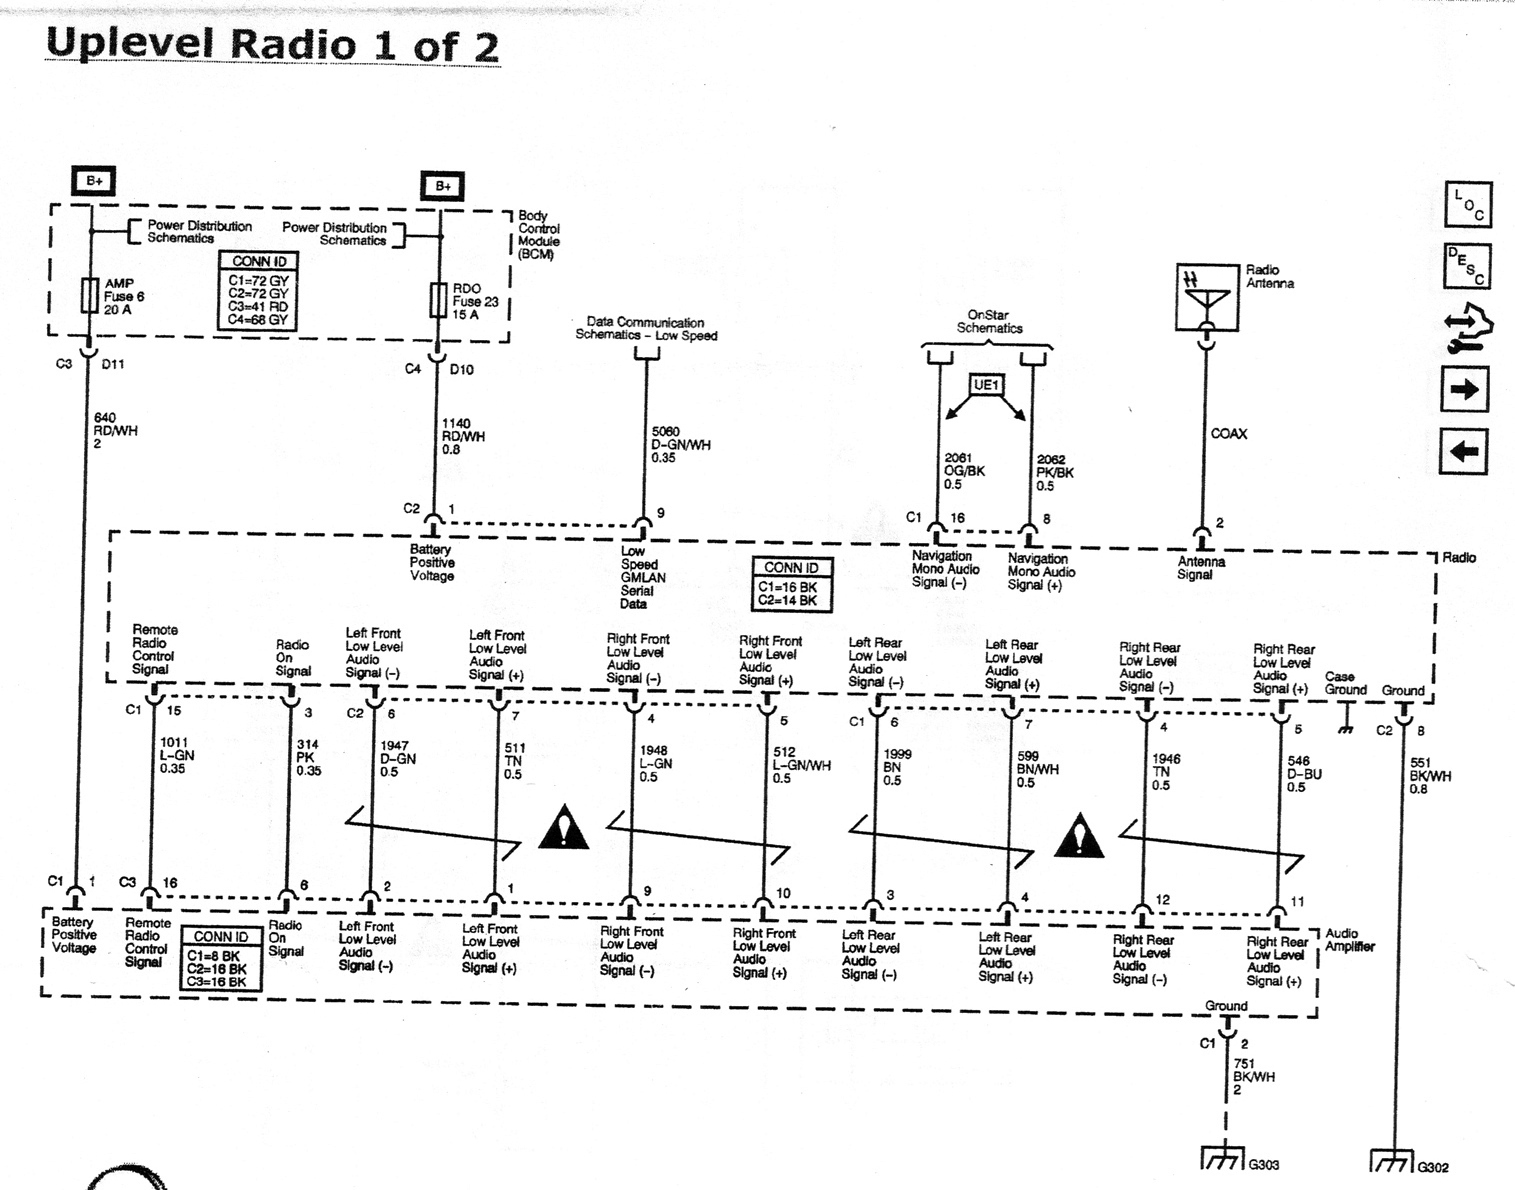 29801 monsoon amp speaker replacement monsoon_wiring_diagram_page_1 volkswagen monsoon wiring diagram wiring diagram simonand grand prix monsoon wiring diagram at gsmportal.co